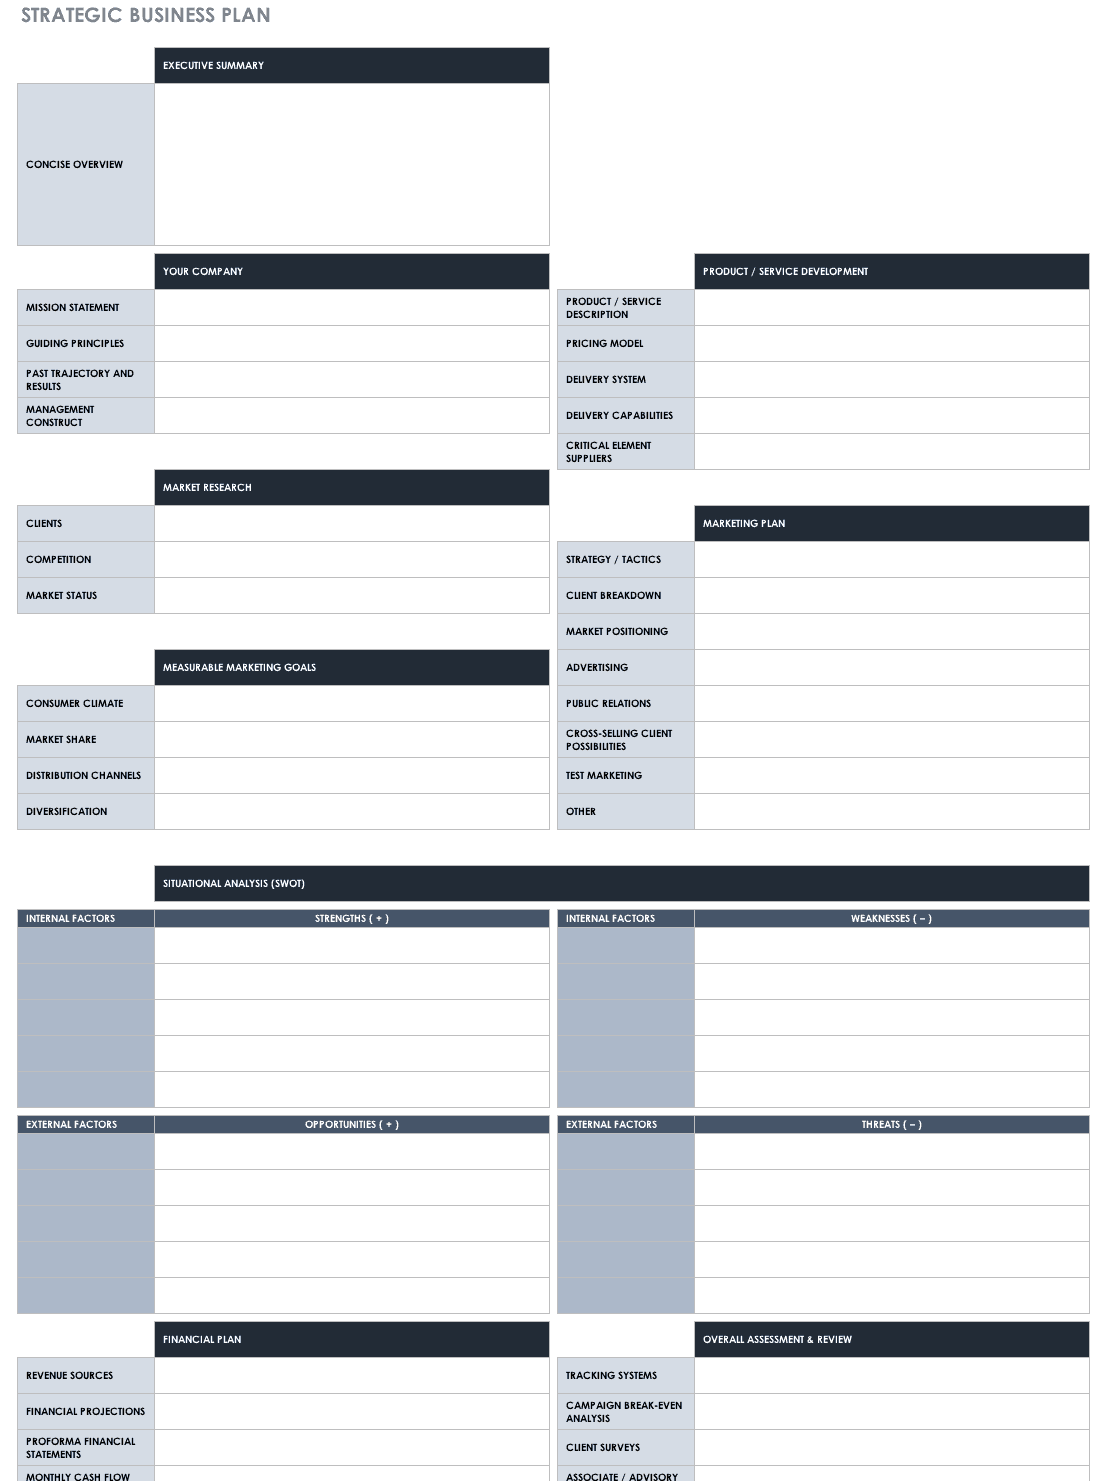 Free strategic planning templates smartsheet strategic business plan template wajeb